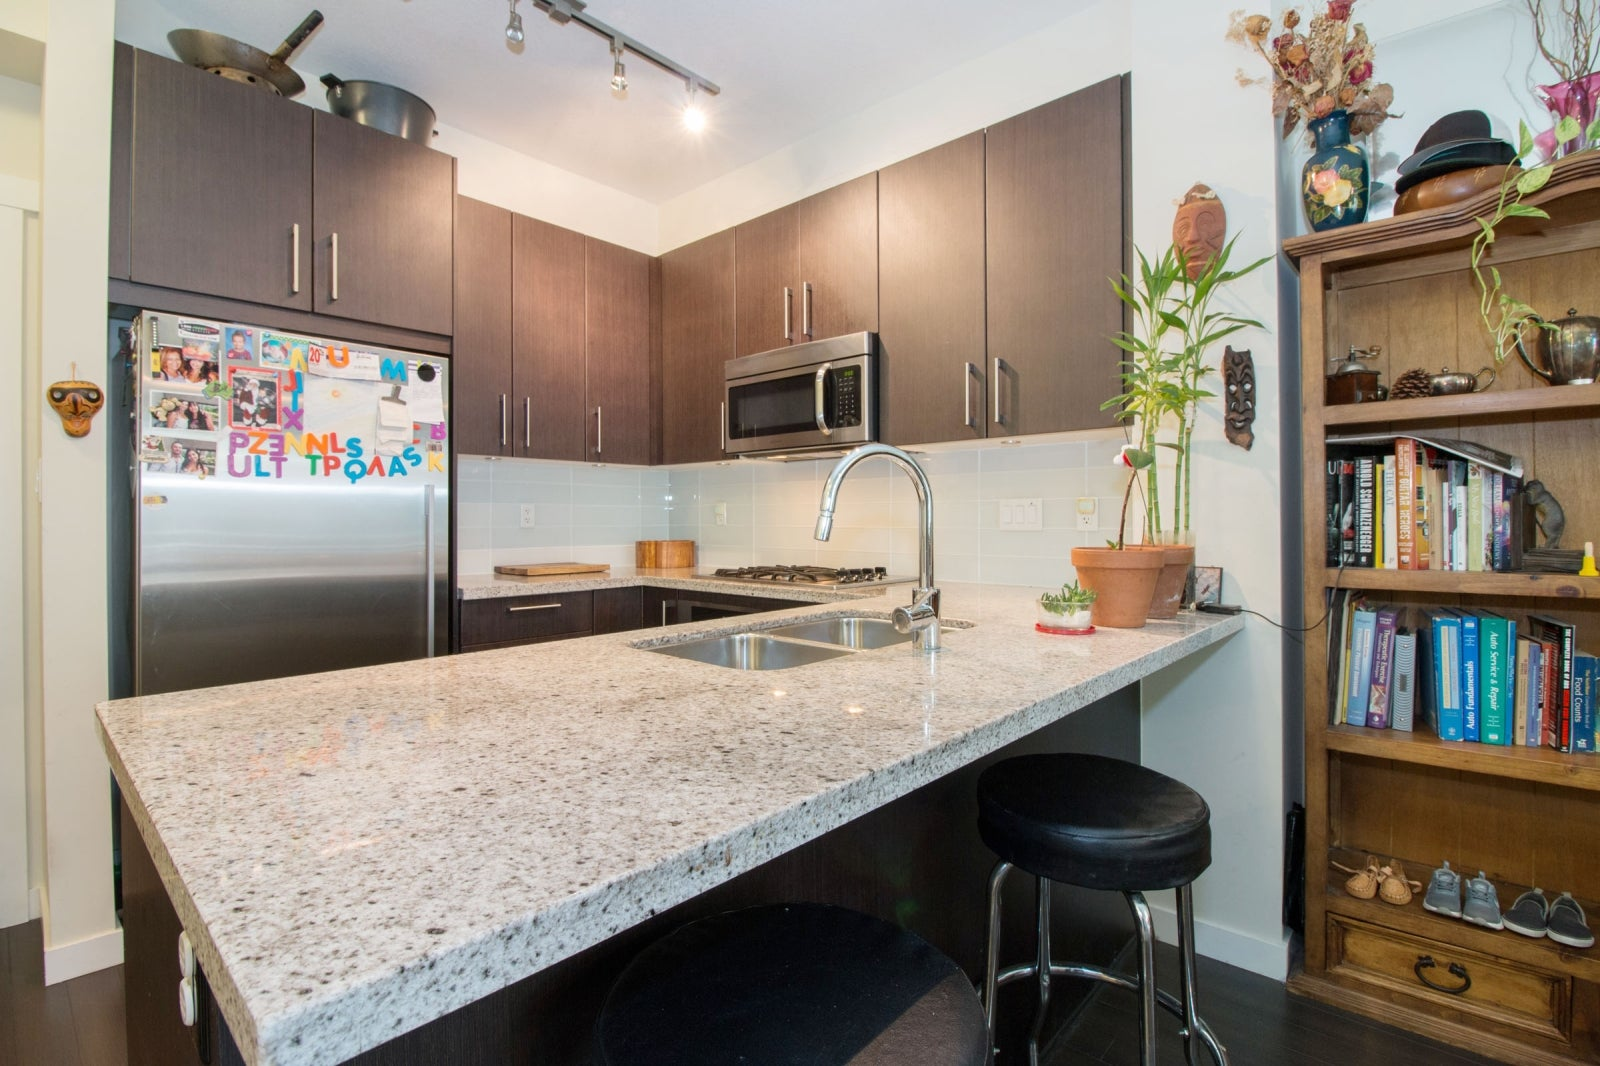 306 139 W 22ND STREET - Central Lonsdale Apartment/Condo for sale, 2 Bedrooms (R2201915) #8